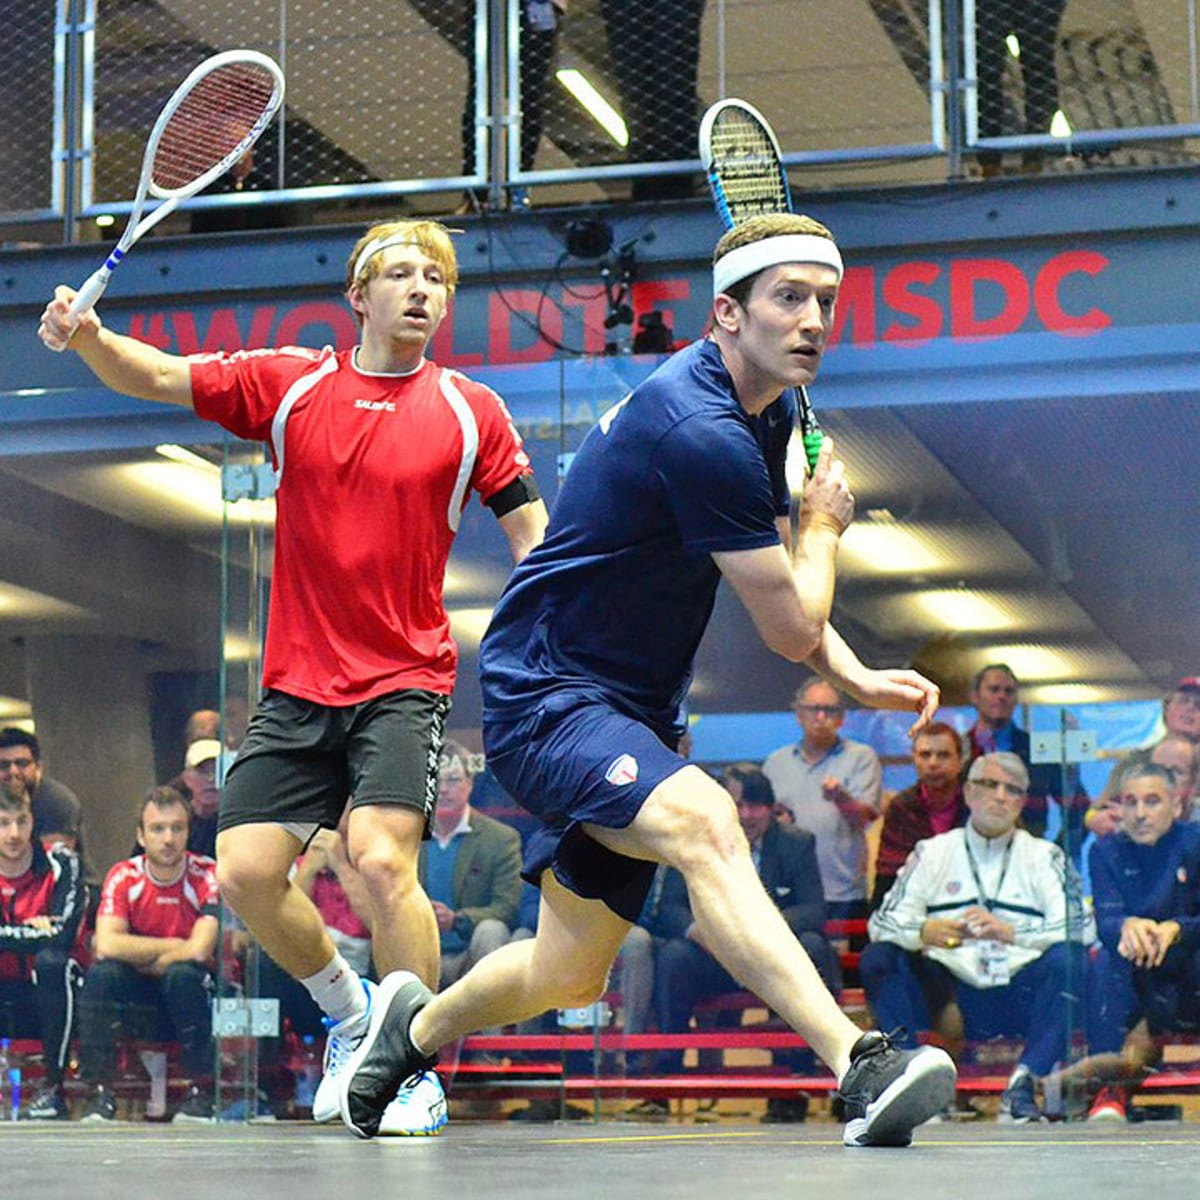 Squash world championship comes to America as sport grows - SI Kids: Sports  News for Kids, Kids Games and More